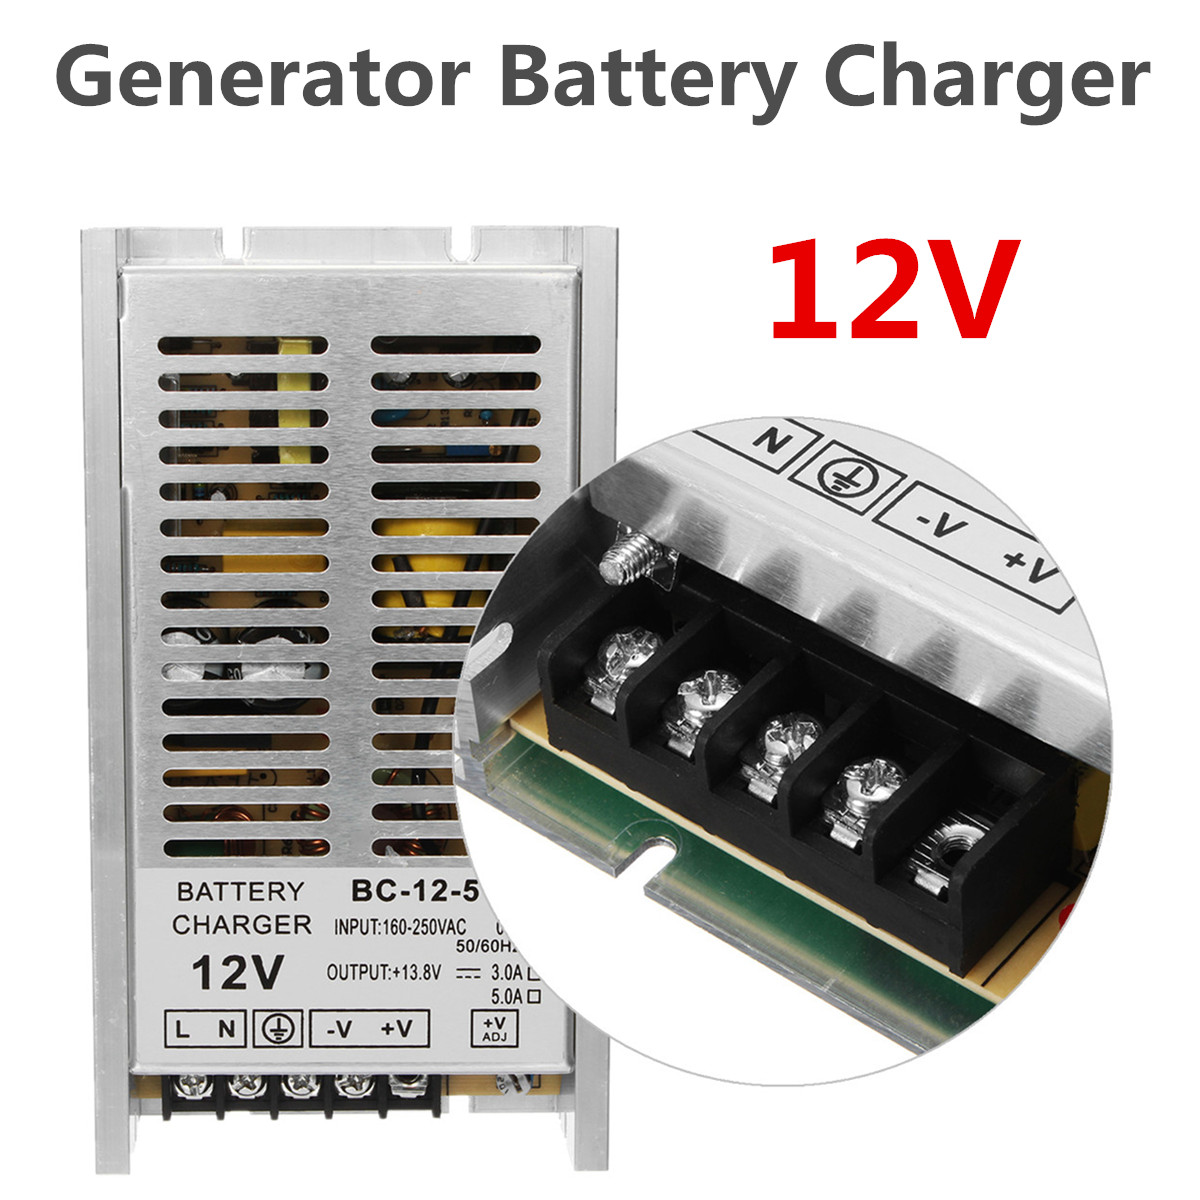 12V Rechargeable Float Battery Charger For Diesel Generator Engine Power Supply for Lead-acid Batterie Protection Aluminum Alloy12V Rechargeable Float Battery Charger For Diesel Generator Engine Power Supply for Lead-acid Batterie Protection Aluminum Alloy